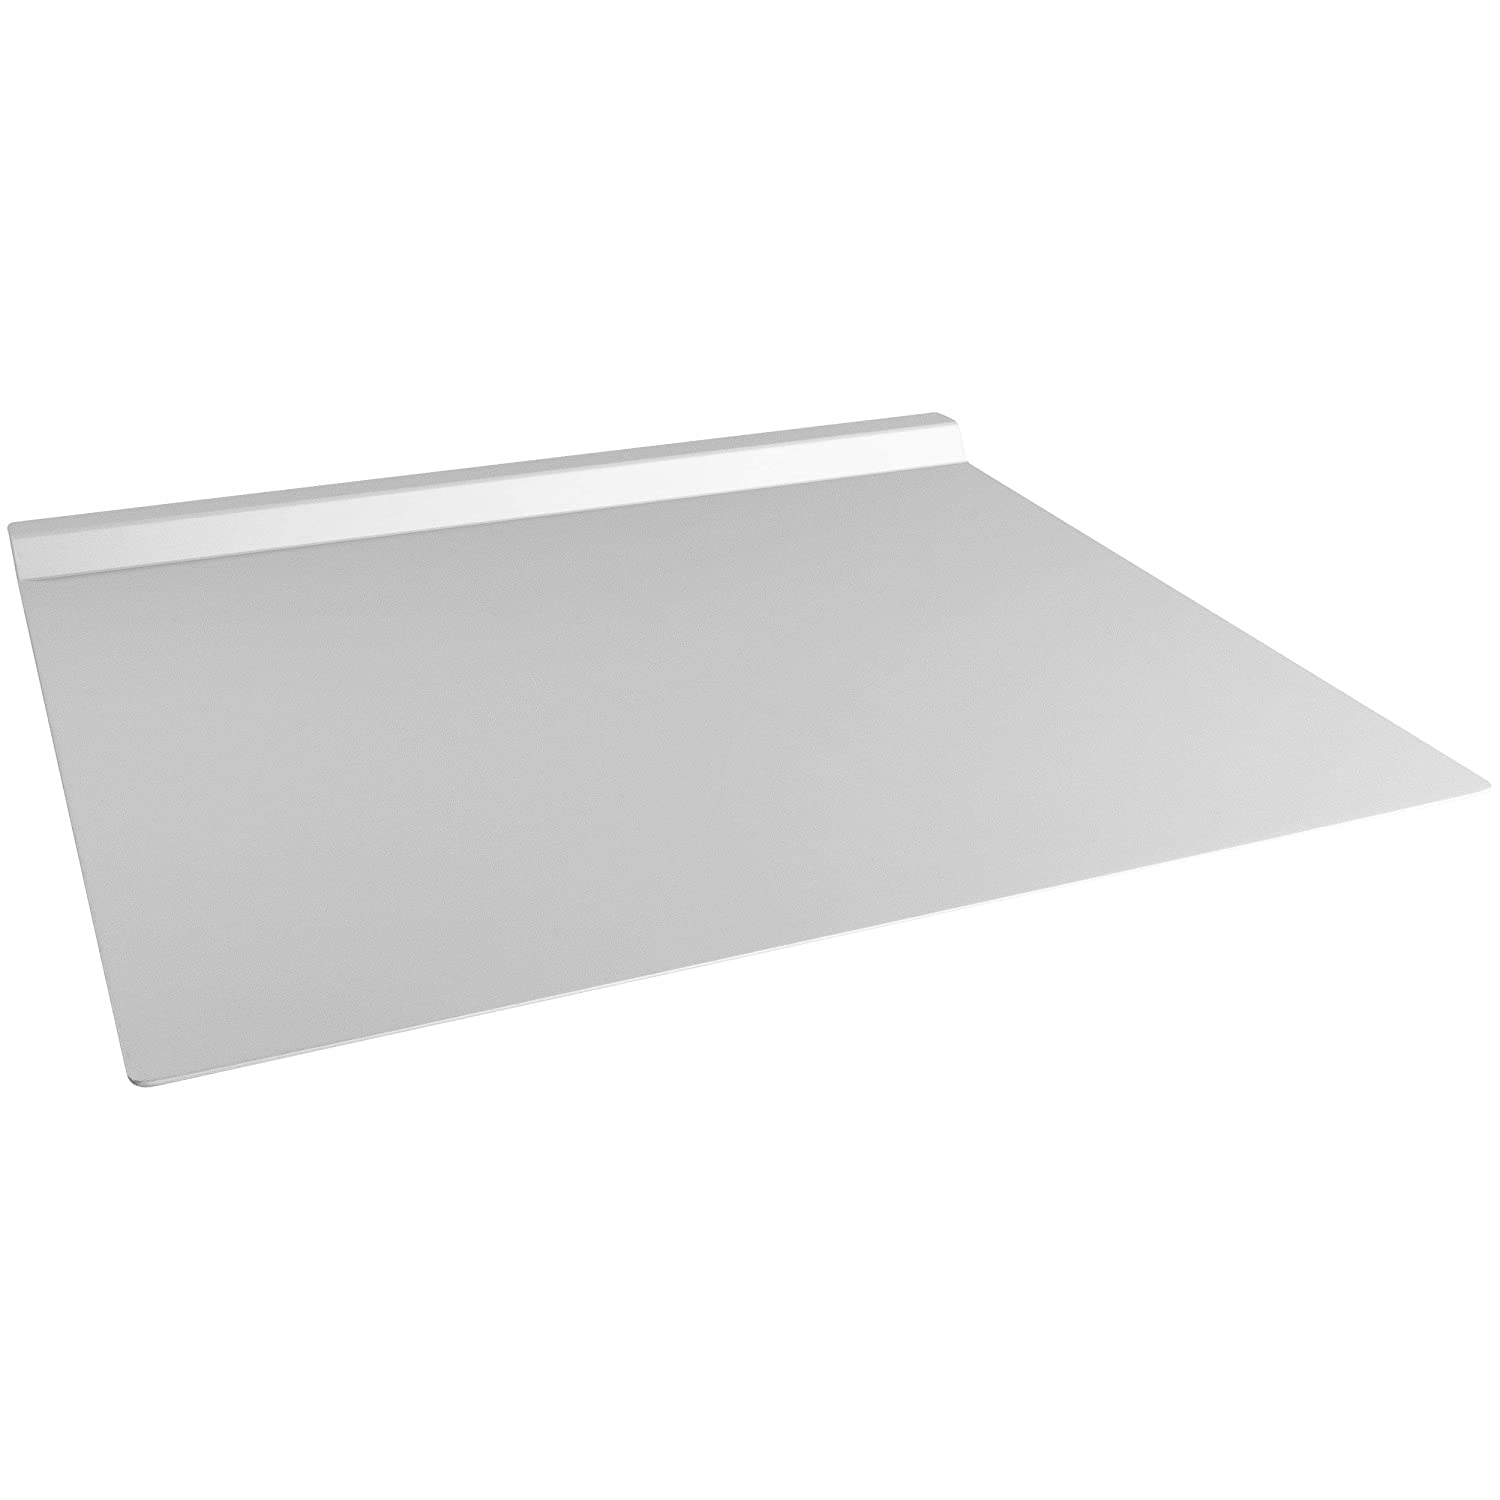 Fat 25% OFF Daddio's Cookie Sheet Anodized Aluminium x Inch 17 Chicago Mall Silv 14